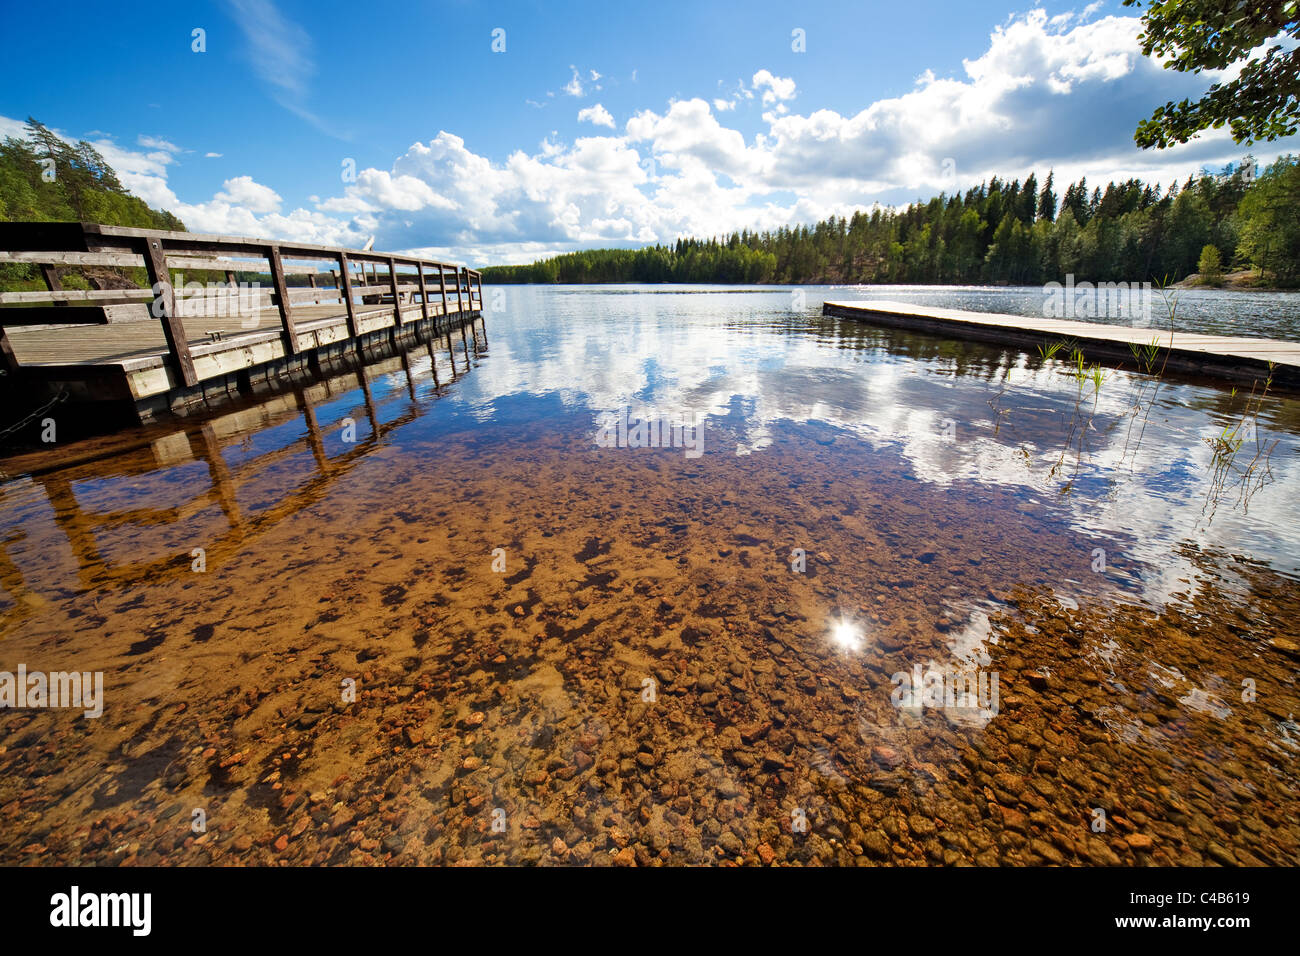 Lake shore. Wide angle view. - Stock Image